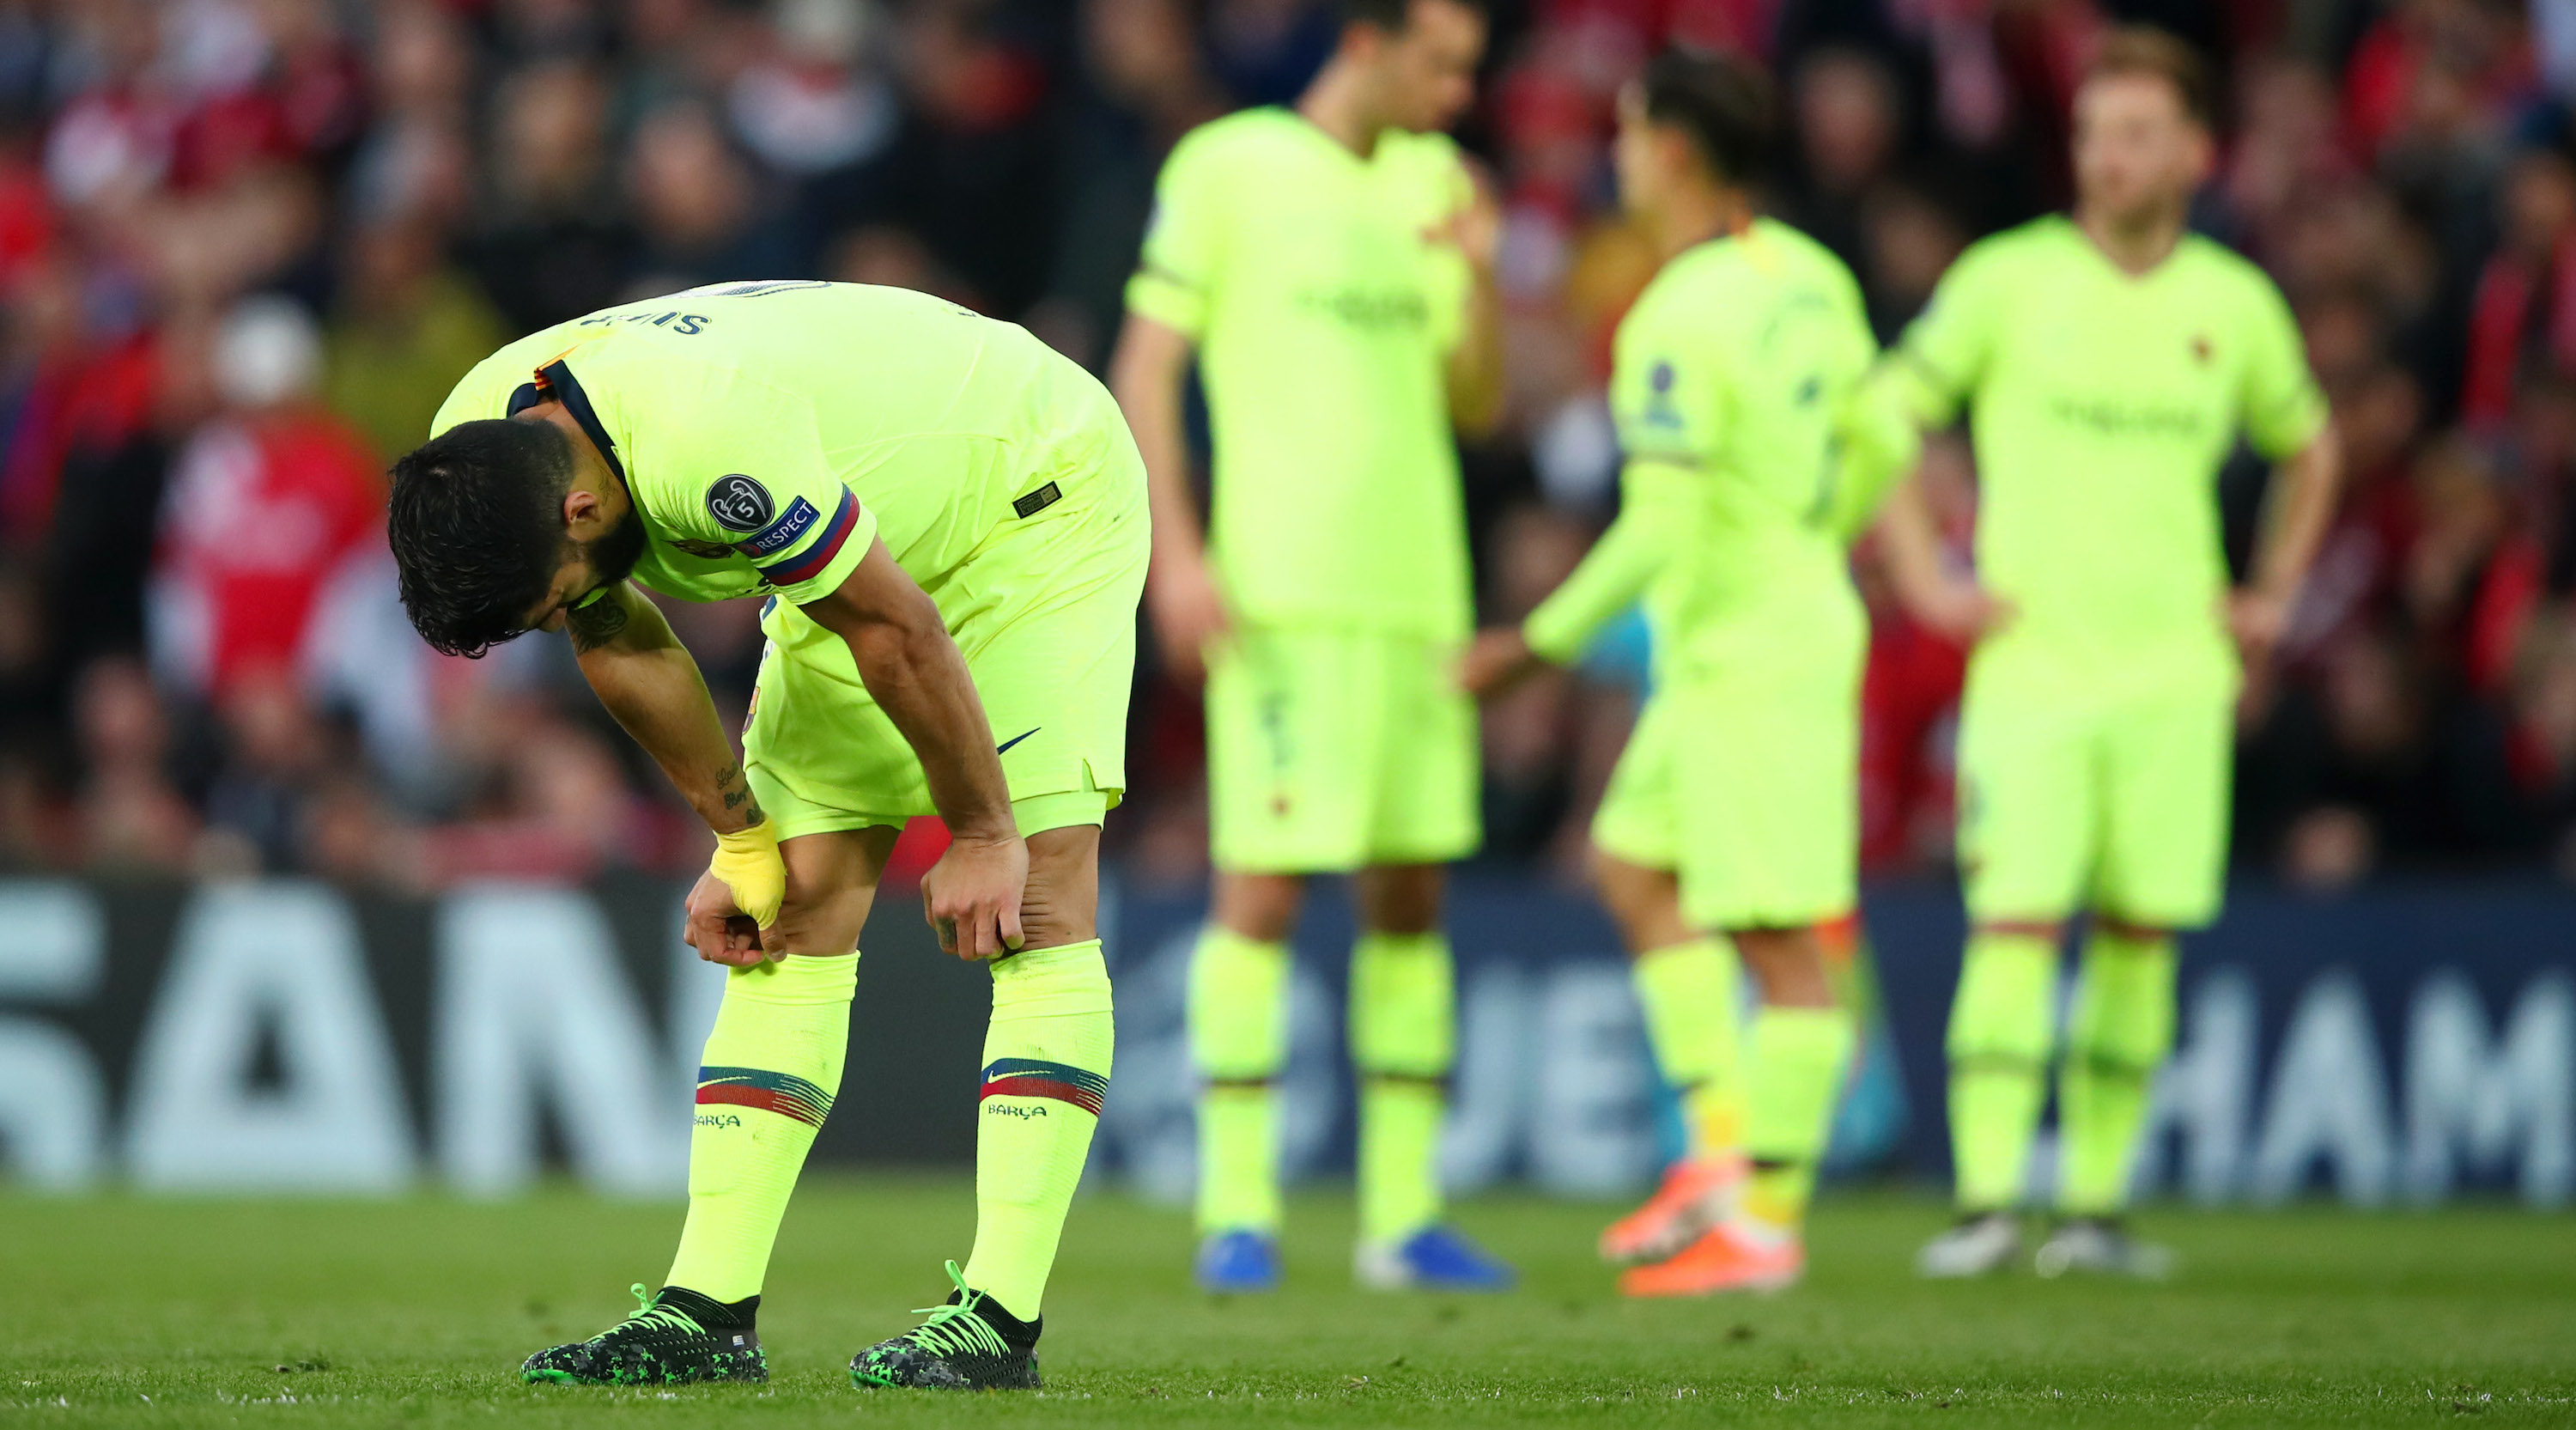 LIVERPOOL, ENGLAND - MAY 07: Luis Suarez of Barcelona reacts during the UEFA Champions League Semi Final second leg match between Liverpool and Barcelona at Anfield on May 07, 2019 in Liverpool, England. (Photo by Clive Brunskill/Getty Images)